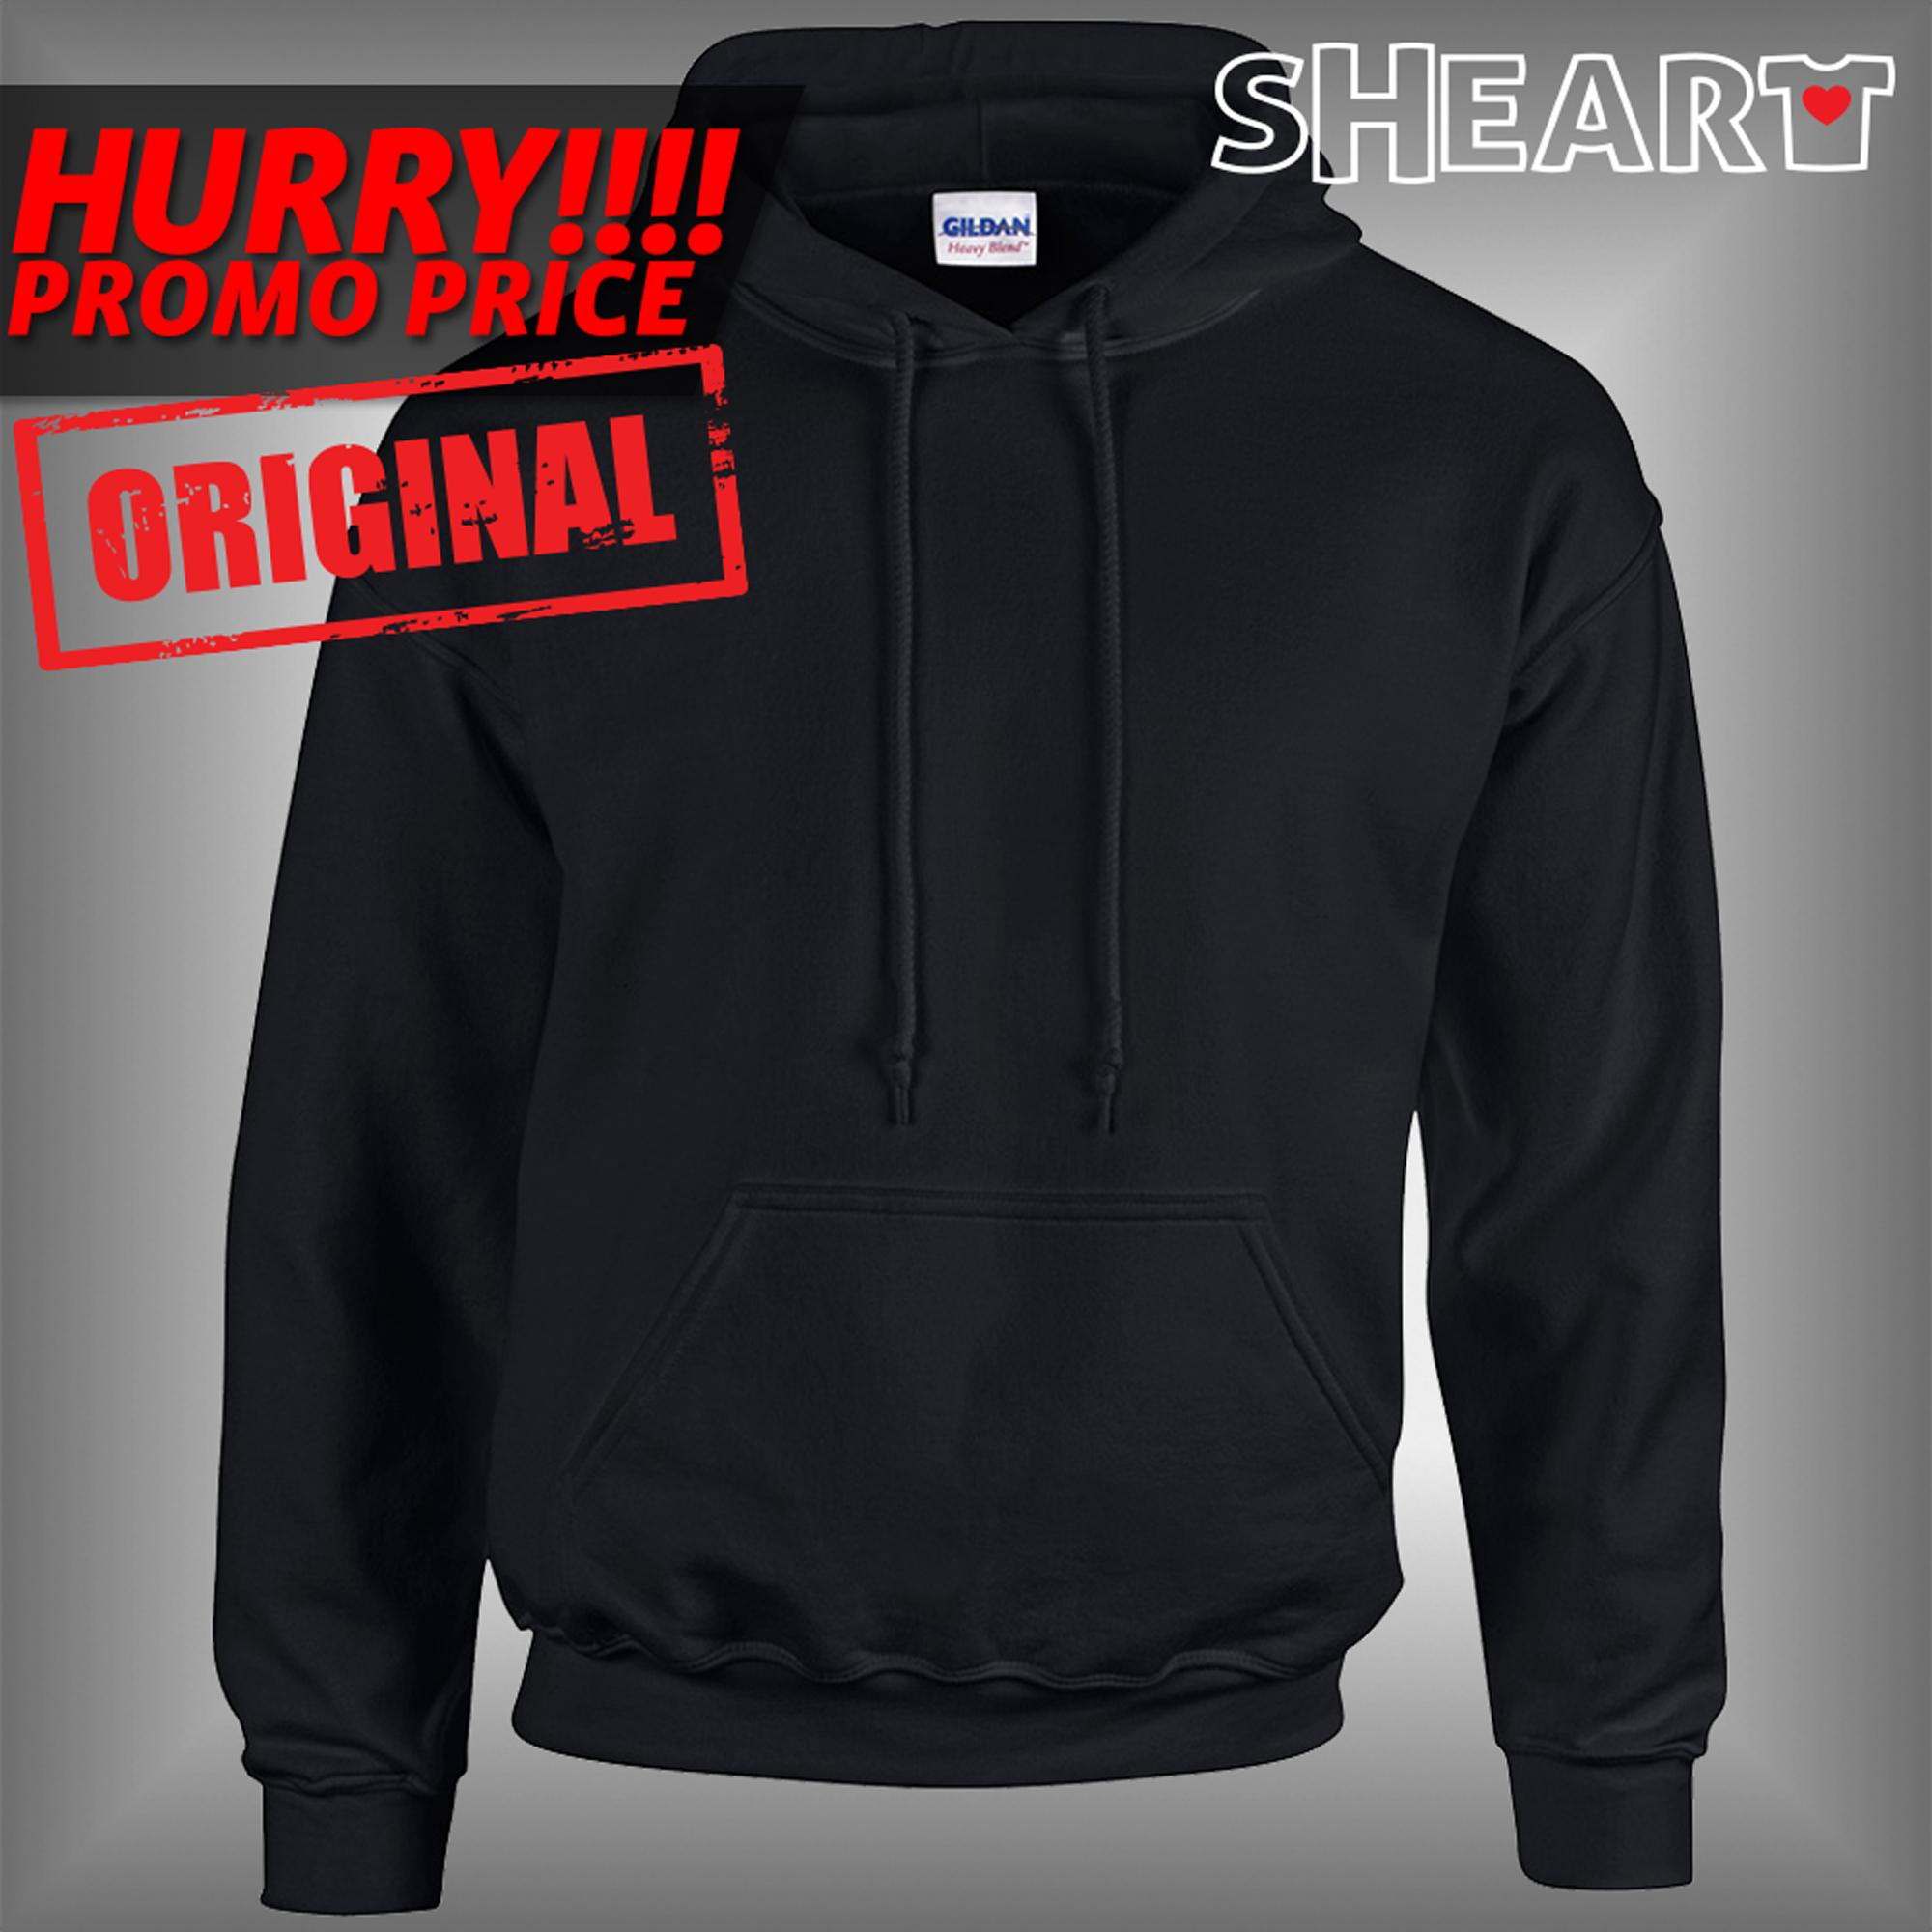 4dec294904 Mens Hoodies for sale - Hoodie Jackets for Men online brands